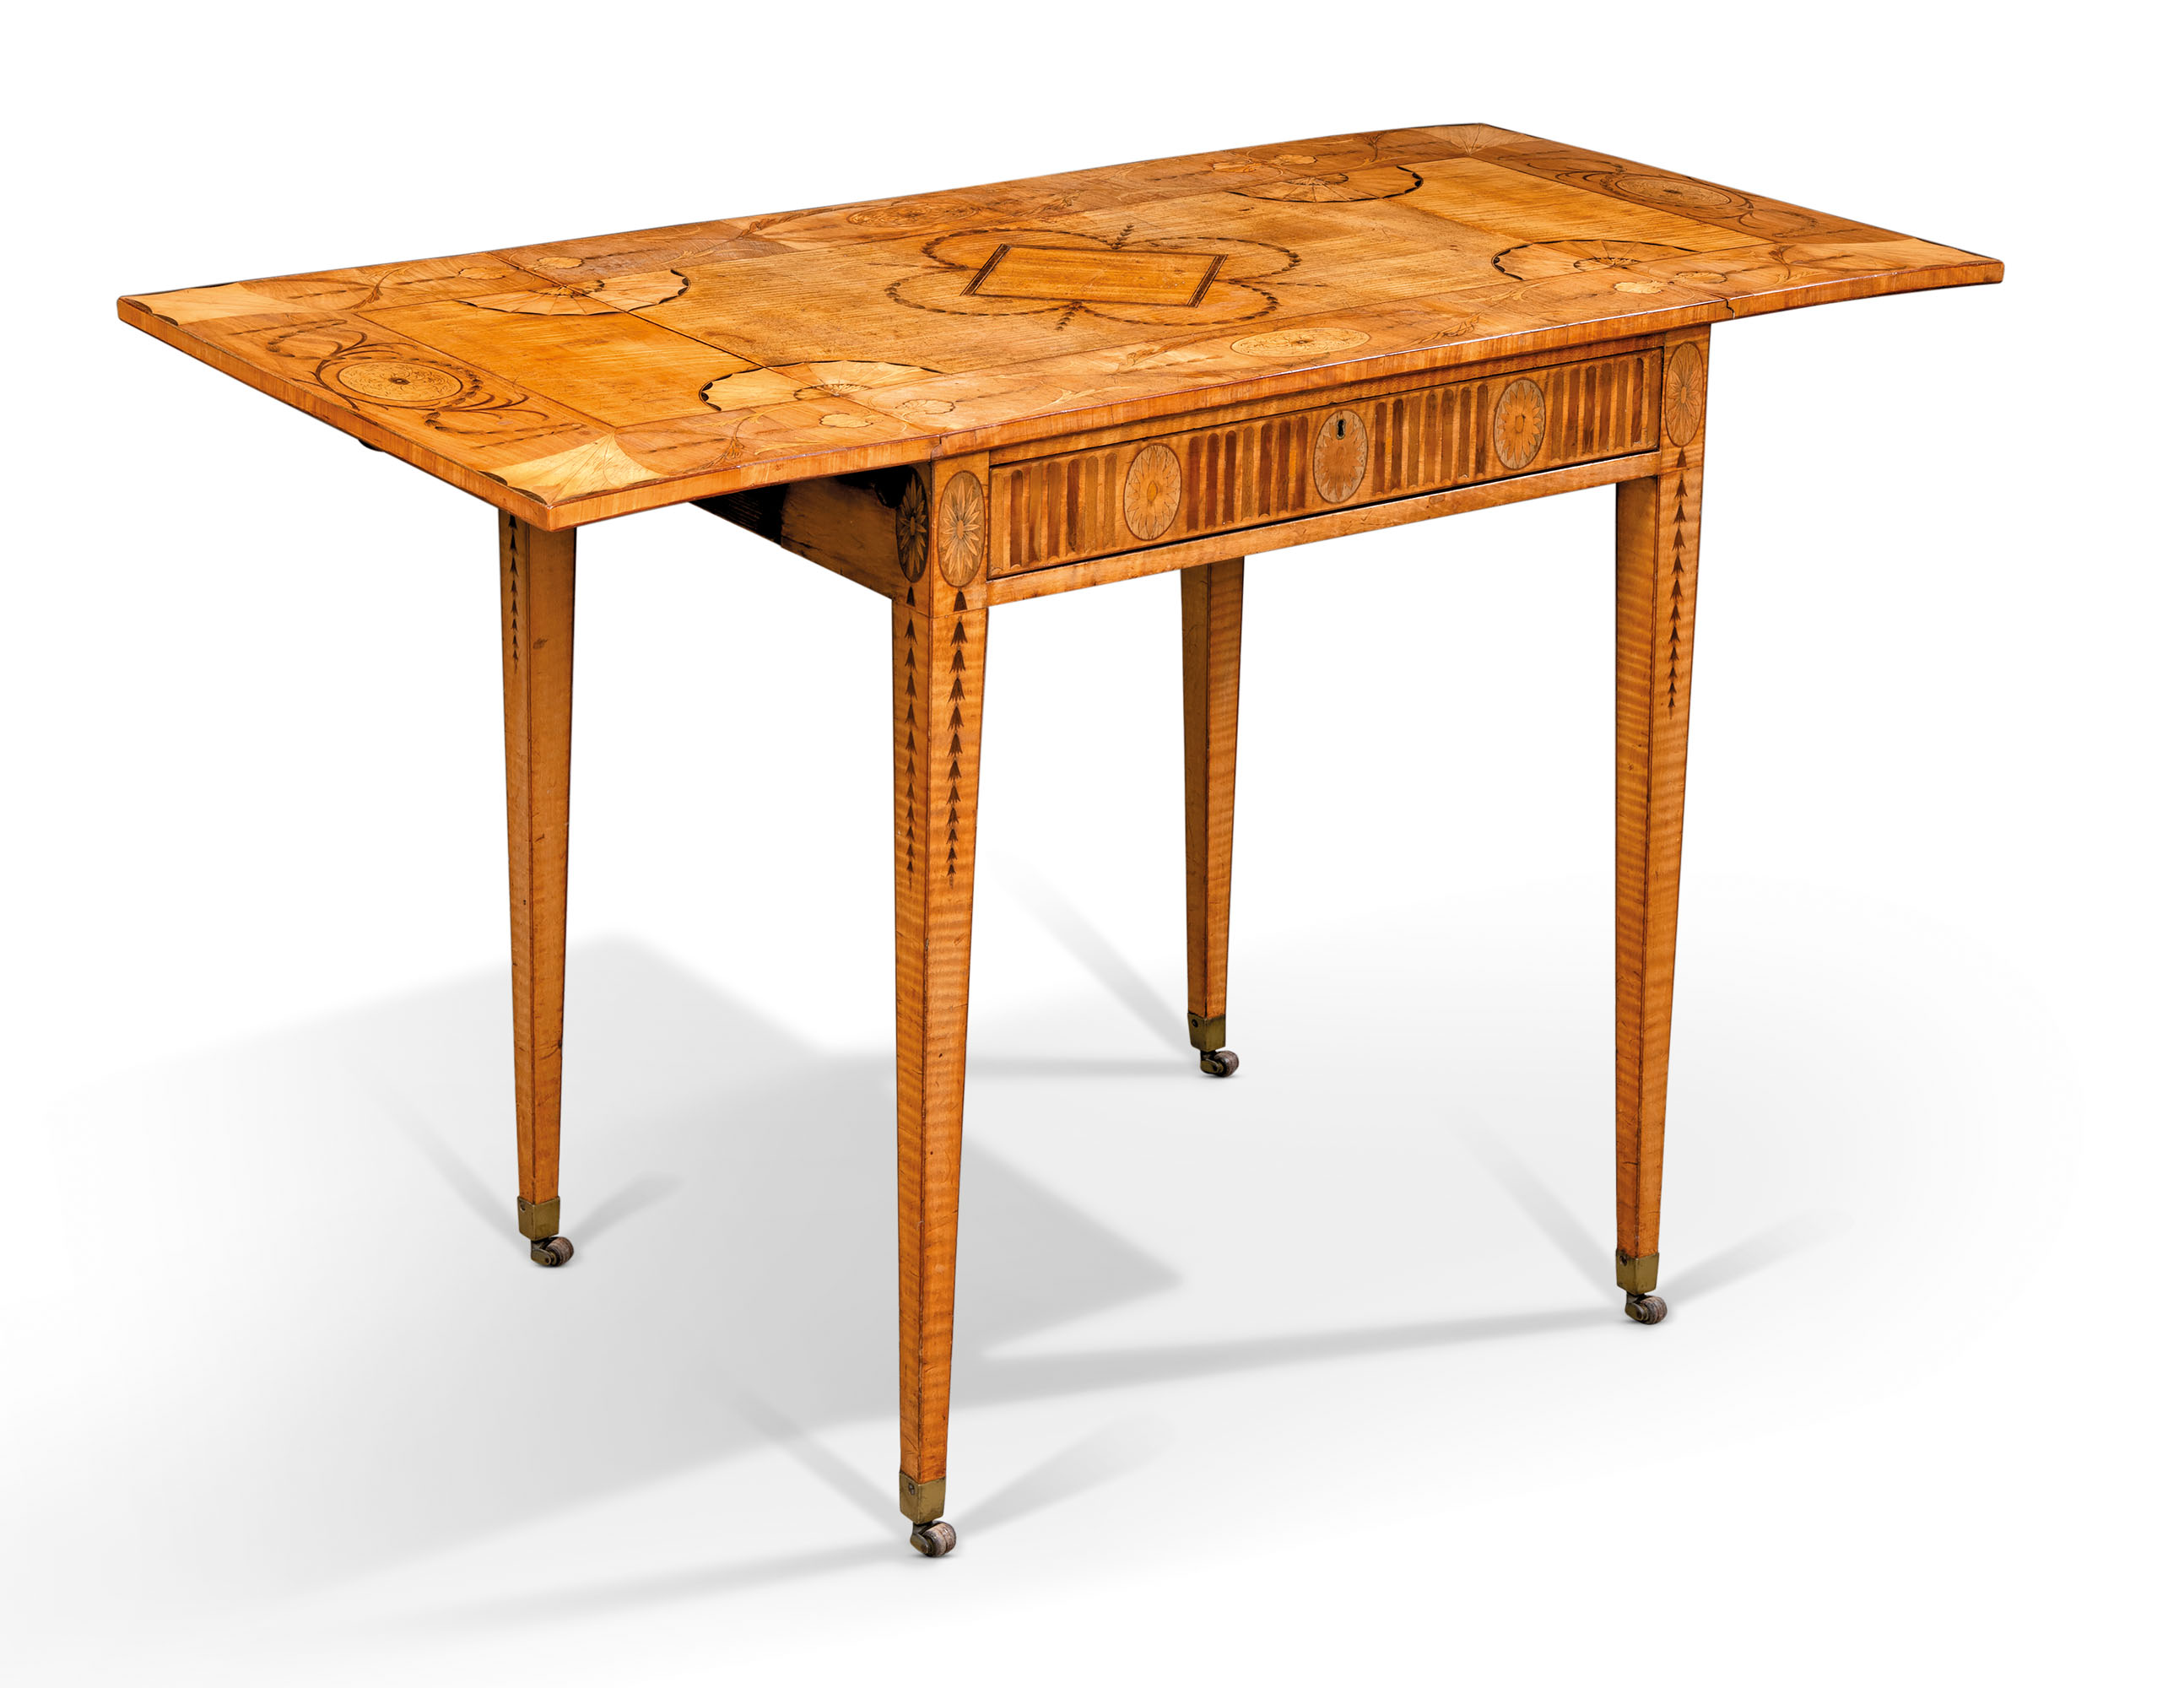 A GEORGE III SYCAMORE, SATINWOOD AND FRUITWOOD MARQUETRY PEMBROKE TABLE